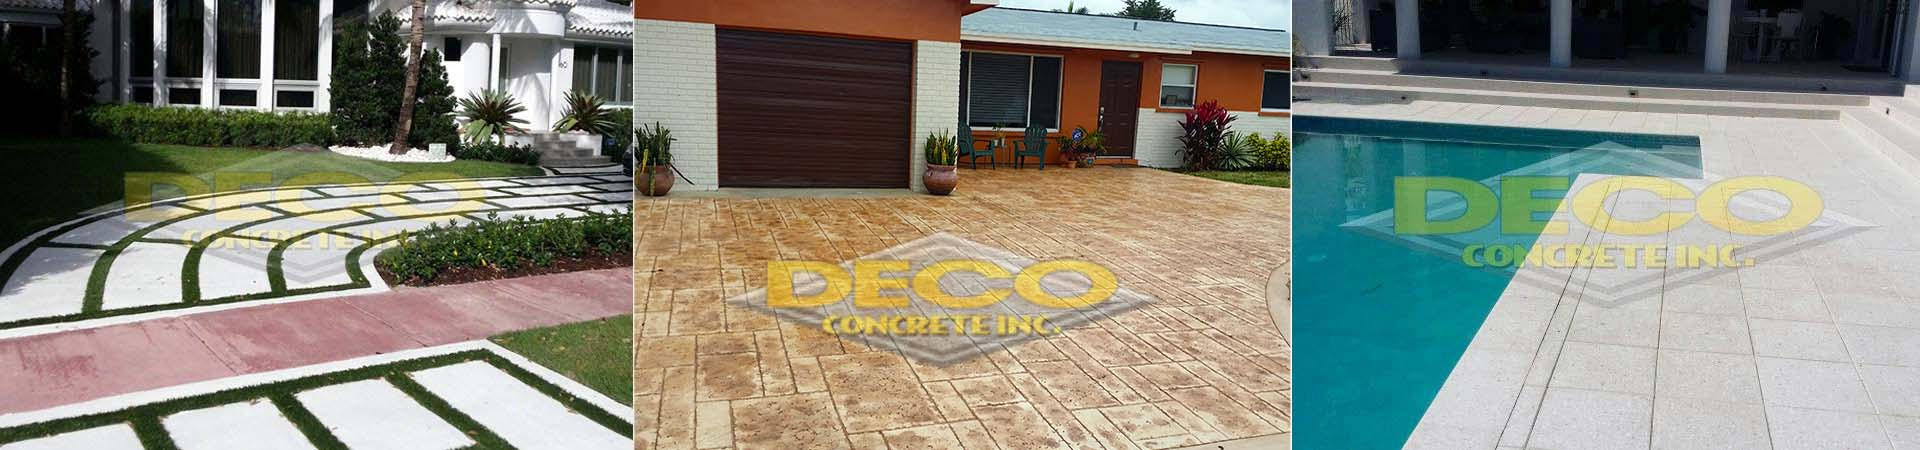 Driveway Pavers in Fort Lauderdale, Miami Beach, Coral Gables, Parkland